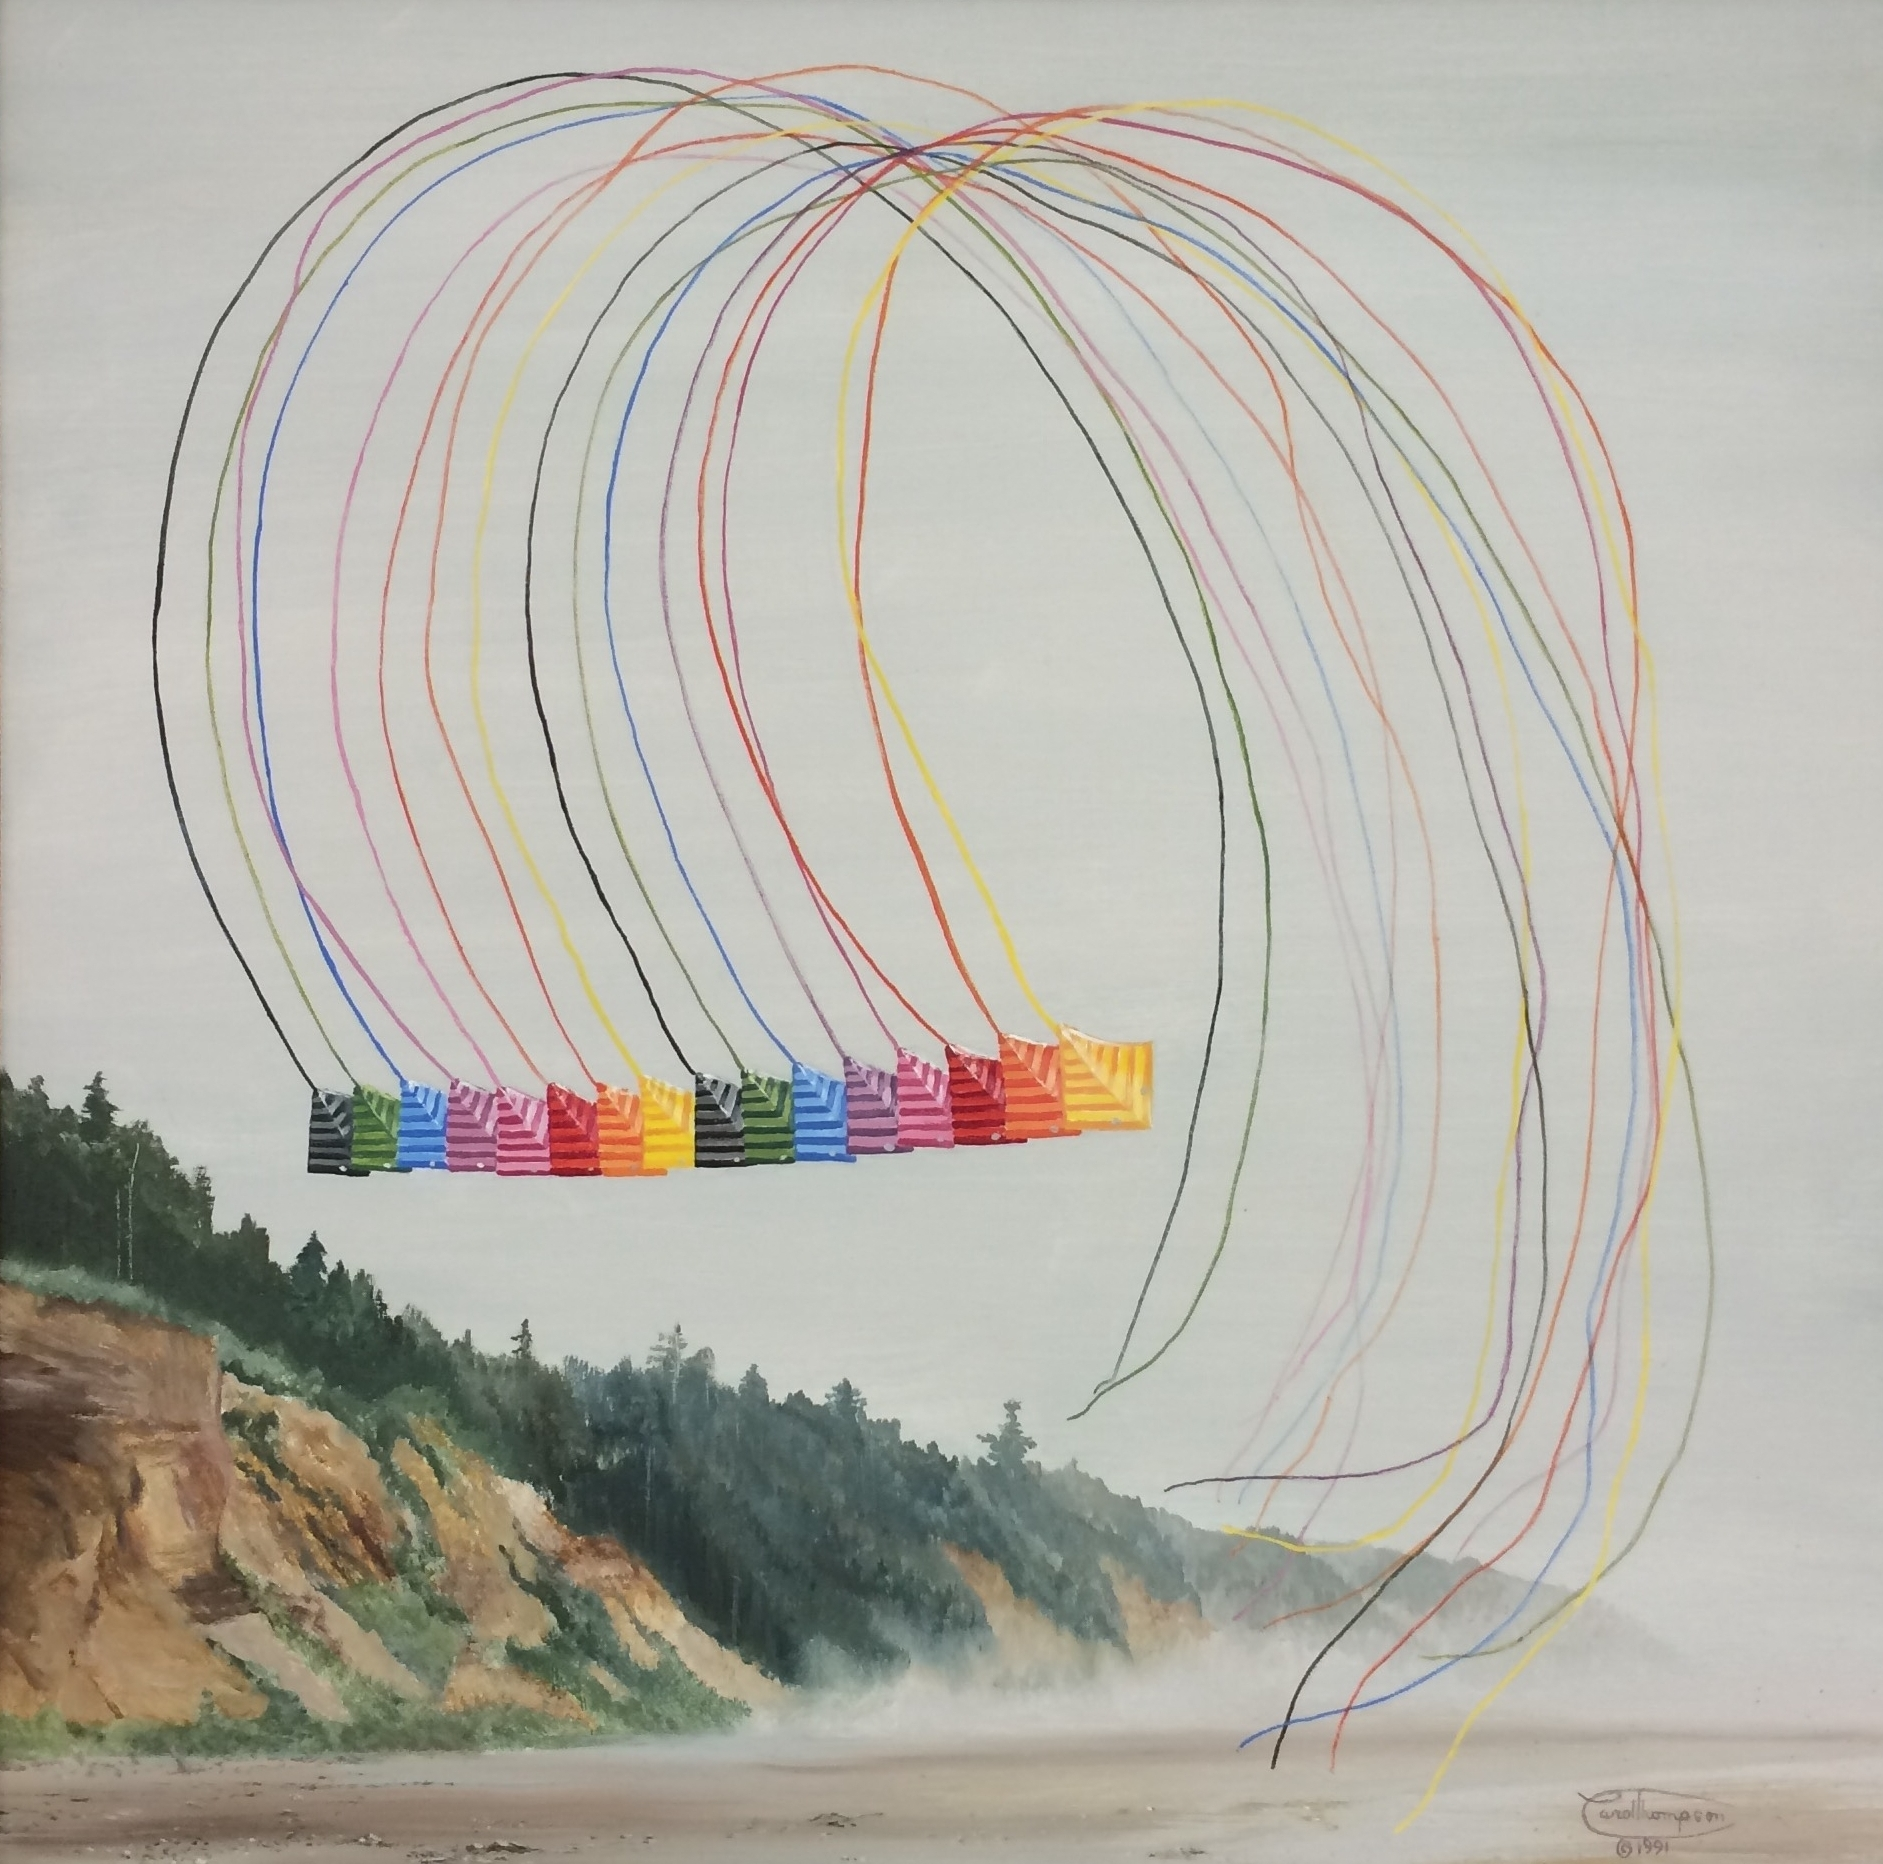 """Sweet Sixteen"" oil painting of Trlby stunt kites by Carol Thompson, 1992 ."